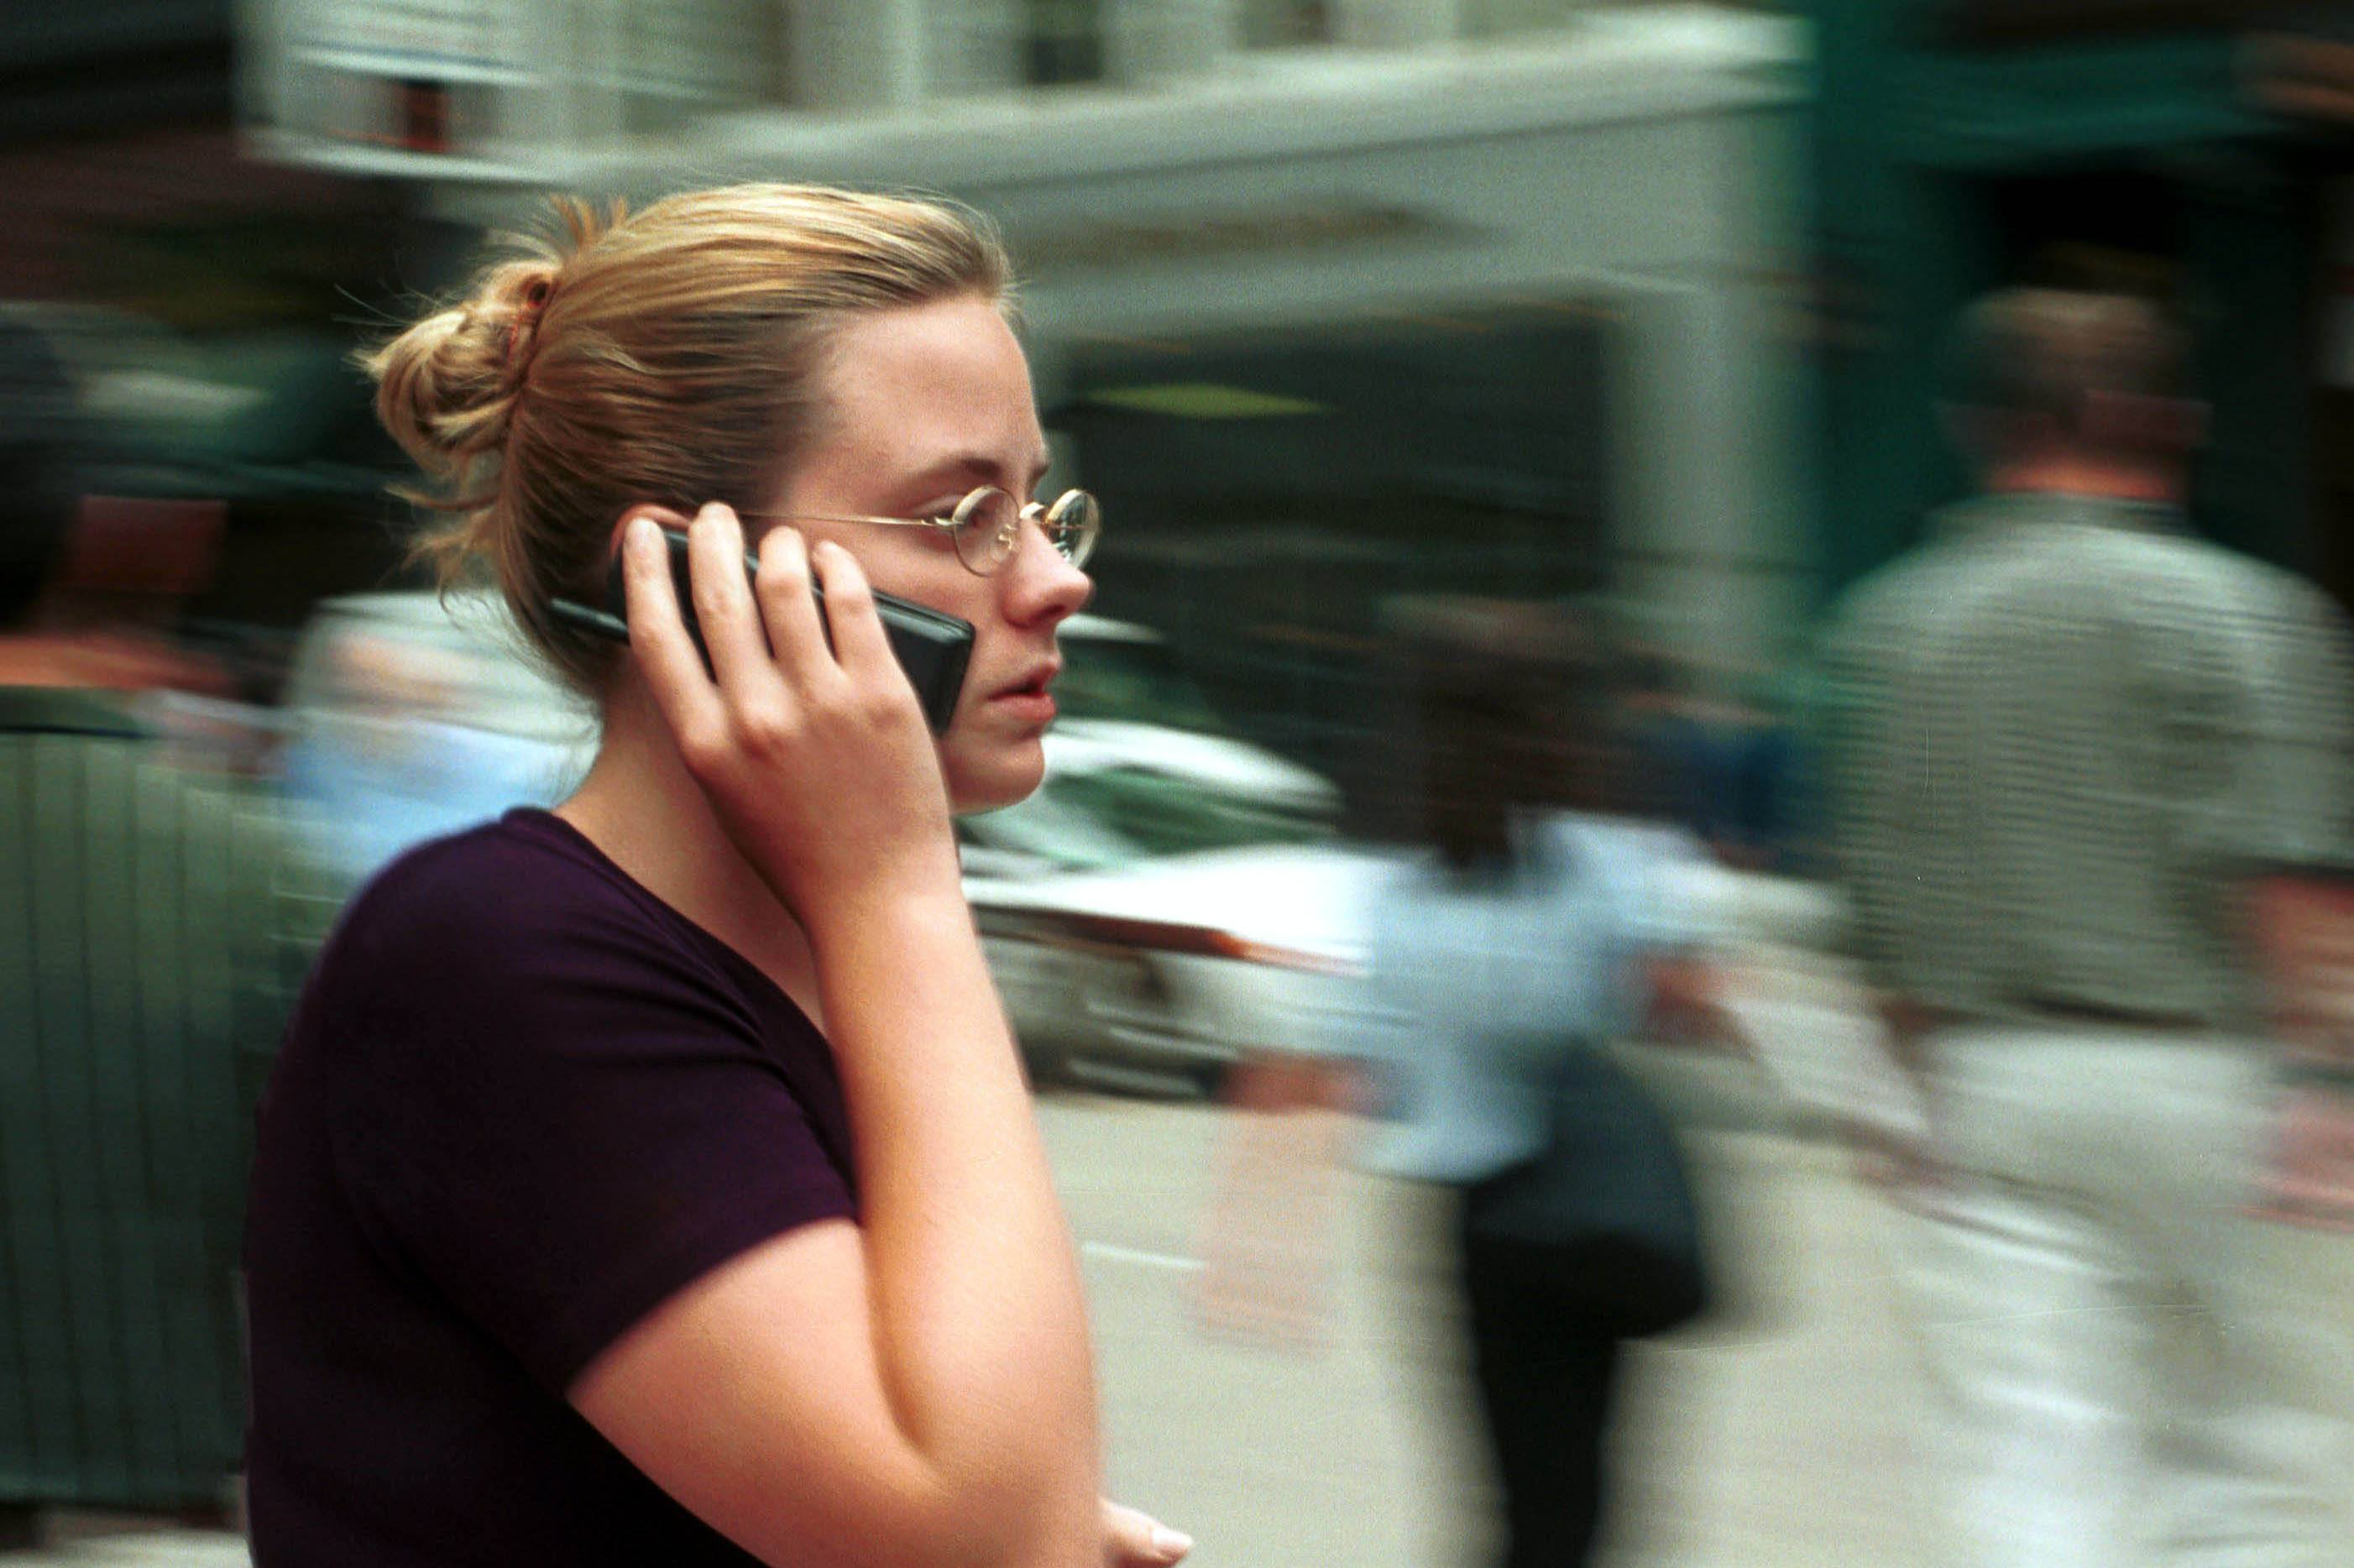 A woman uses her cellphone while walking down the street